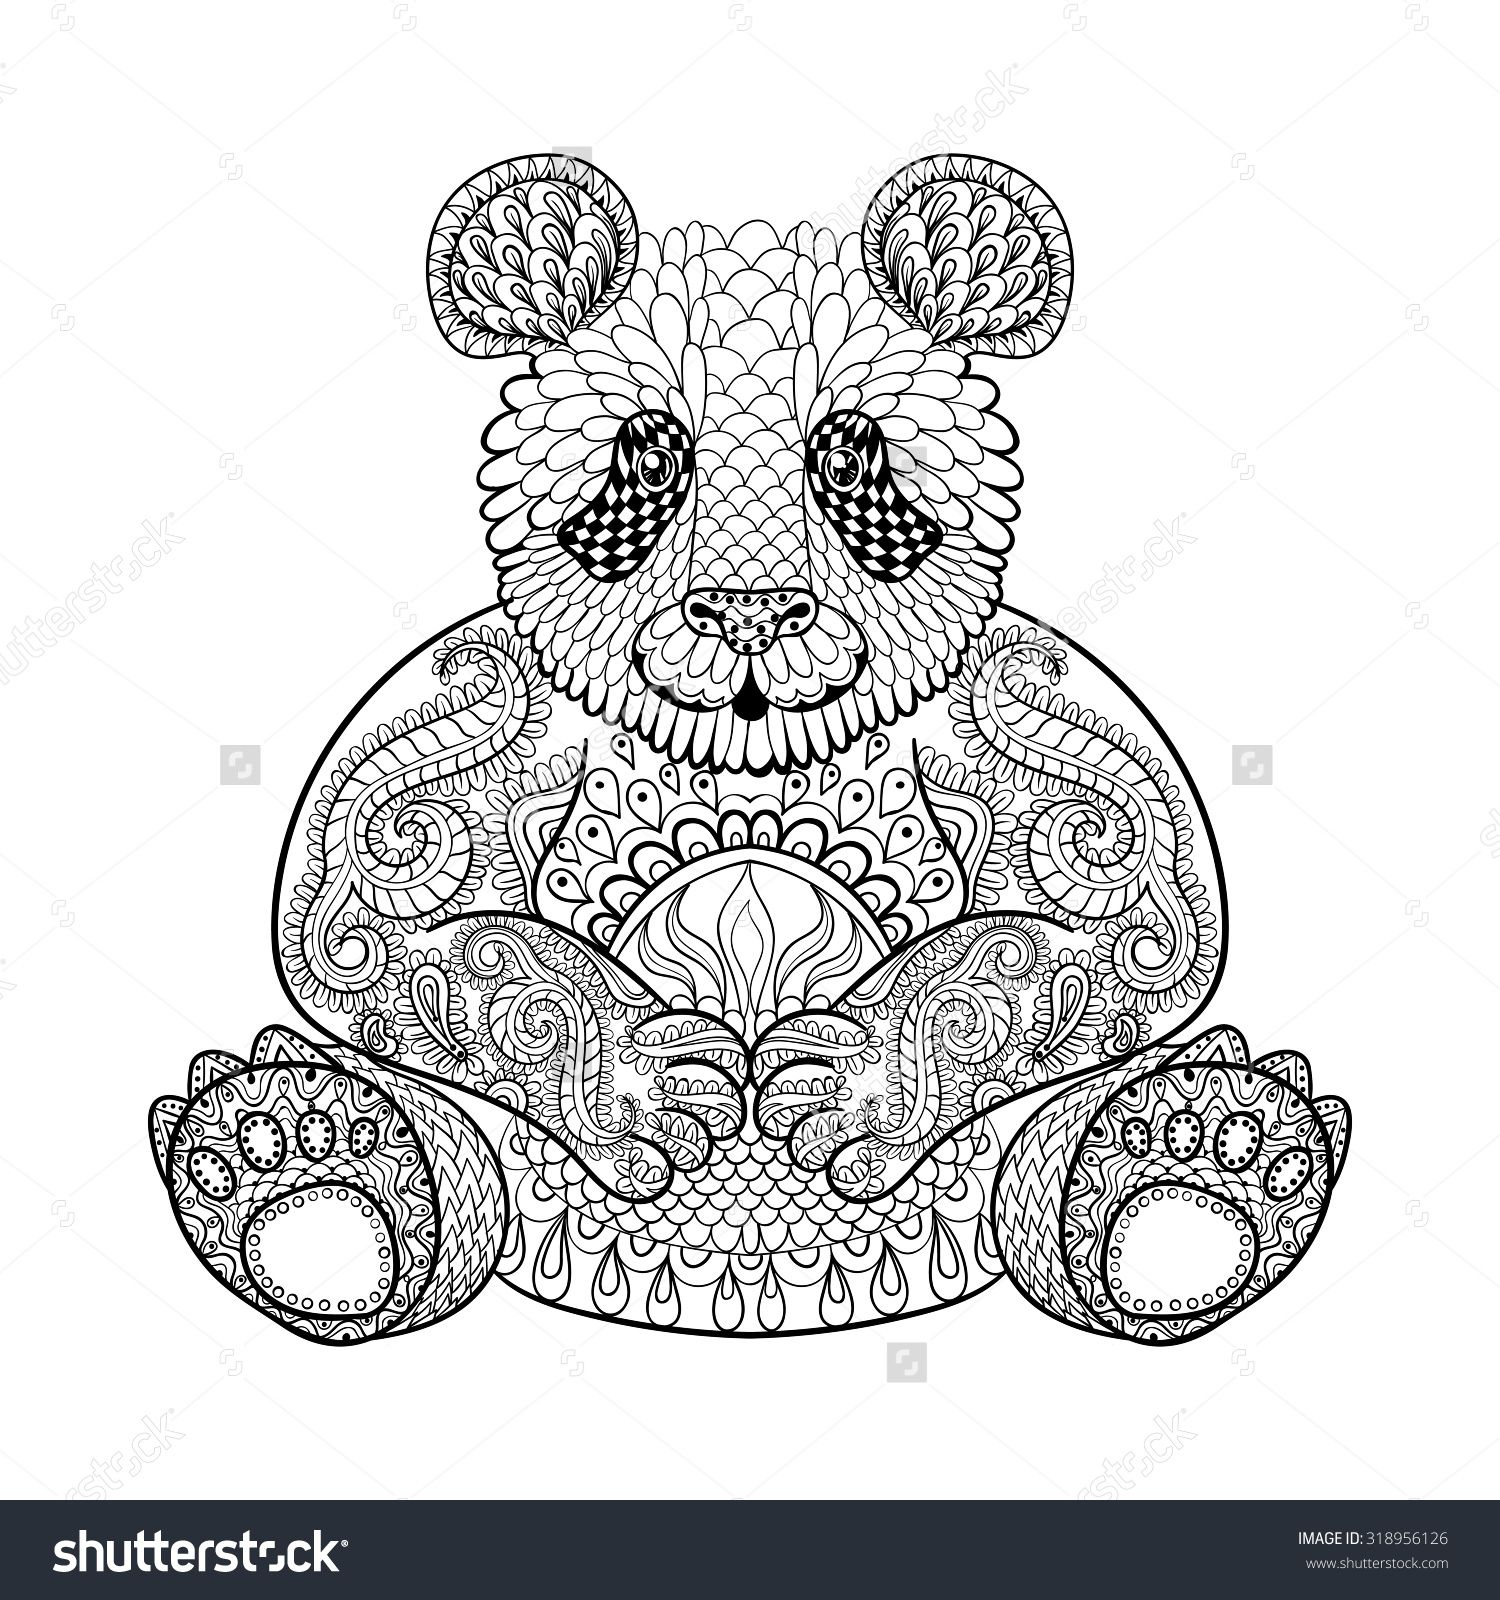 asian coloring pages for adults - Bing images | Japan and China ...